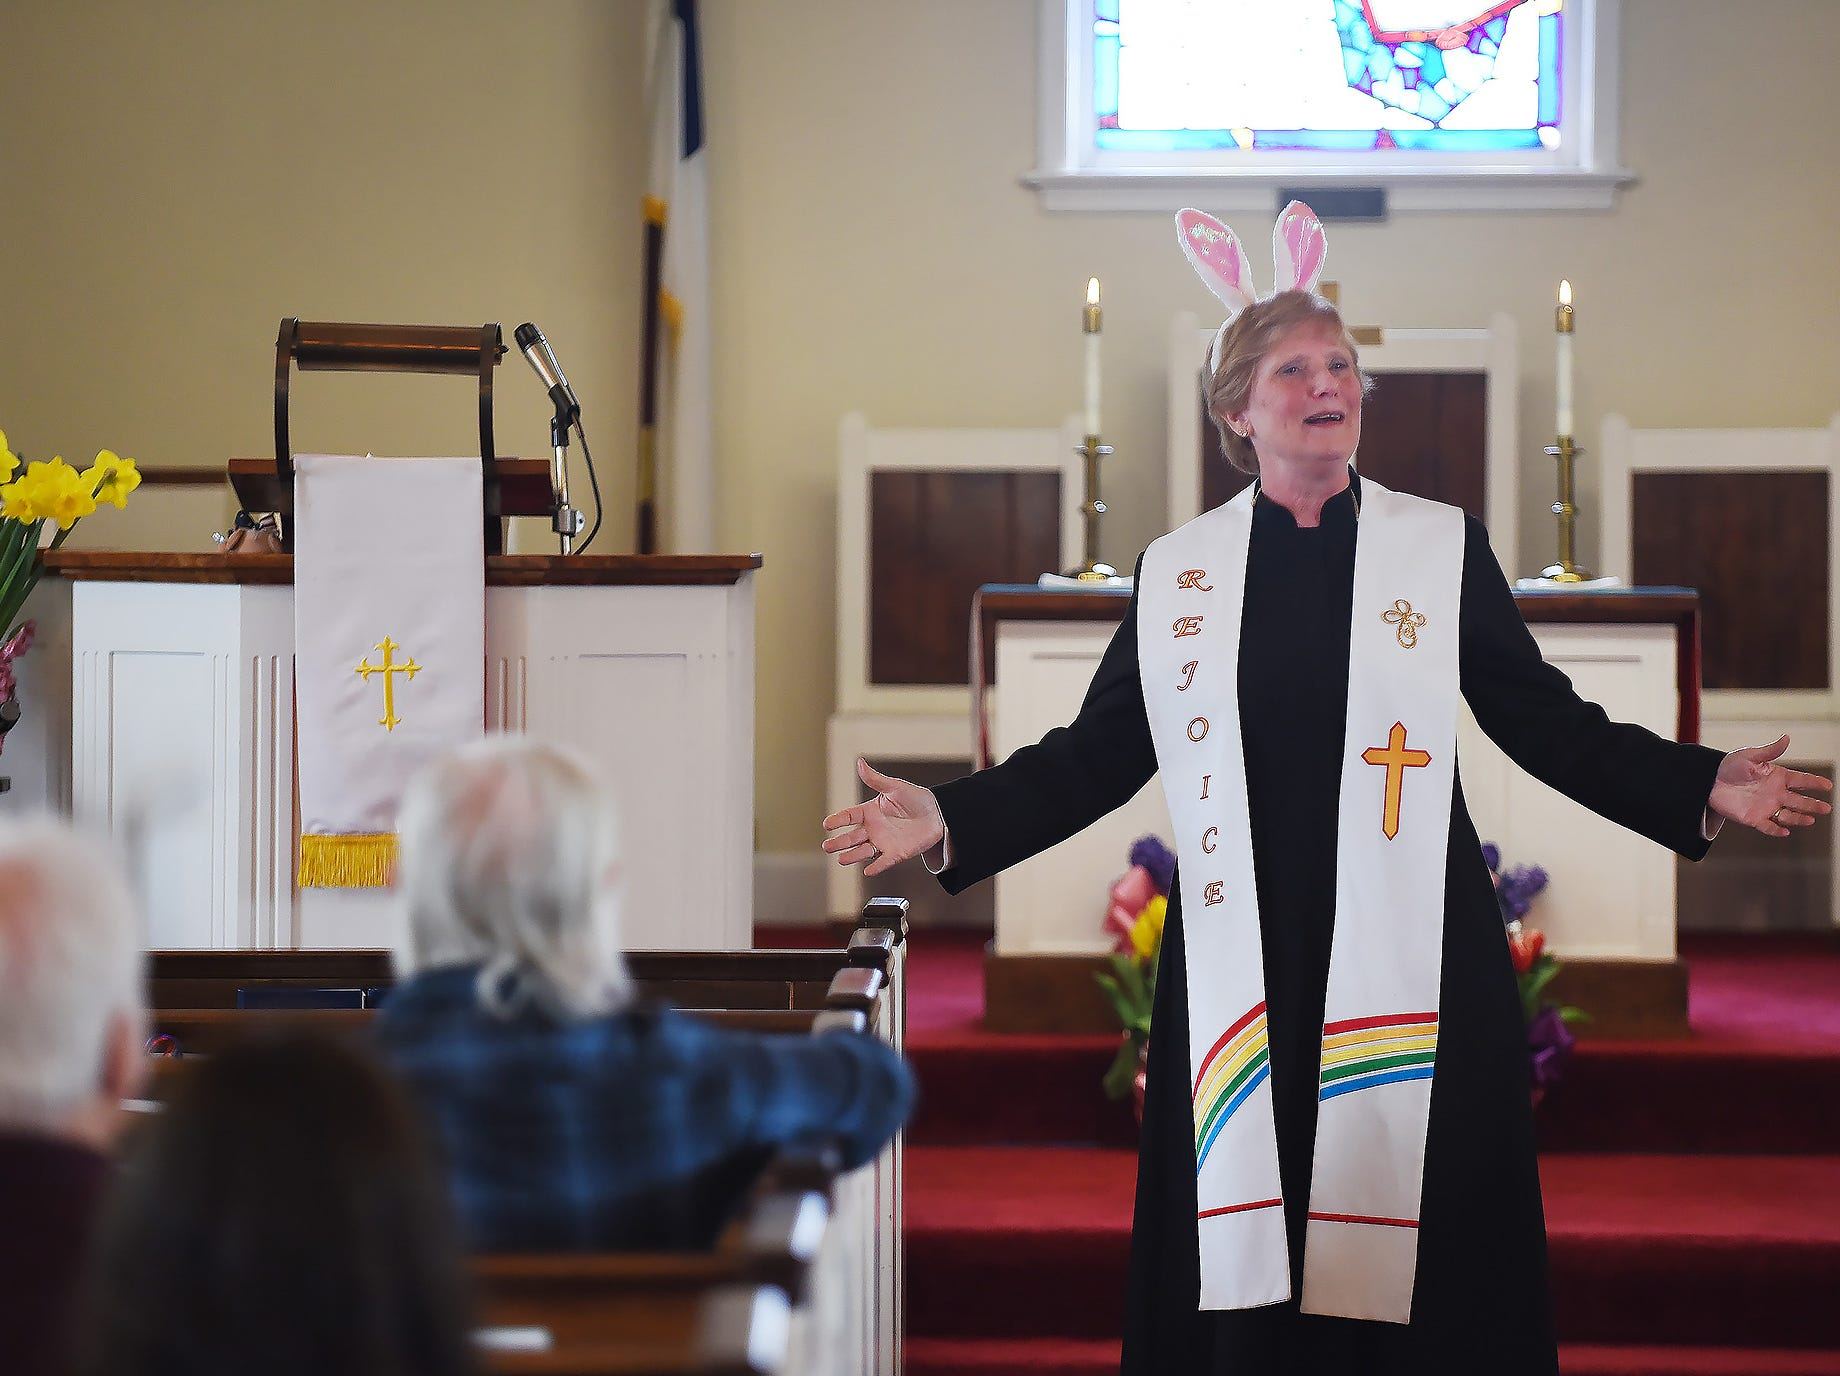 Lay Pastor Linda Van Kampen leads the congregation as she wears bunny ears while showing her various choices for participating in the Easter parade, photographed during the Easter service at United Presbyterian Church in Lyndhurst on 04/01/18.